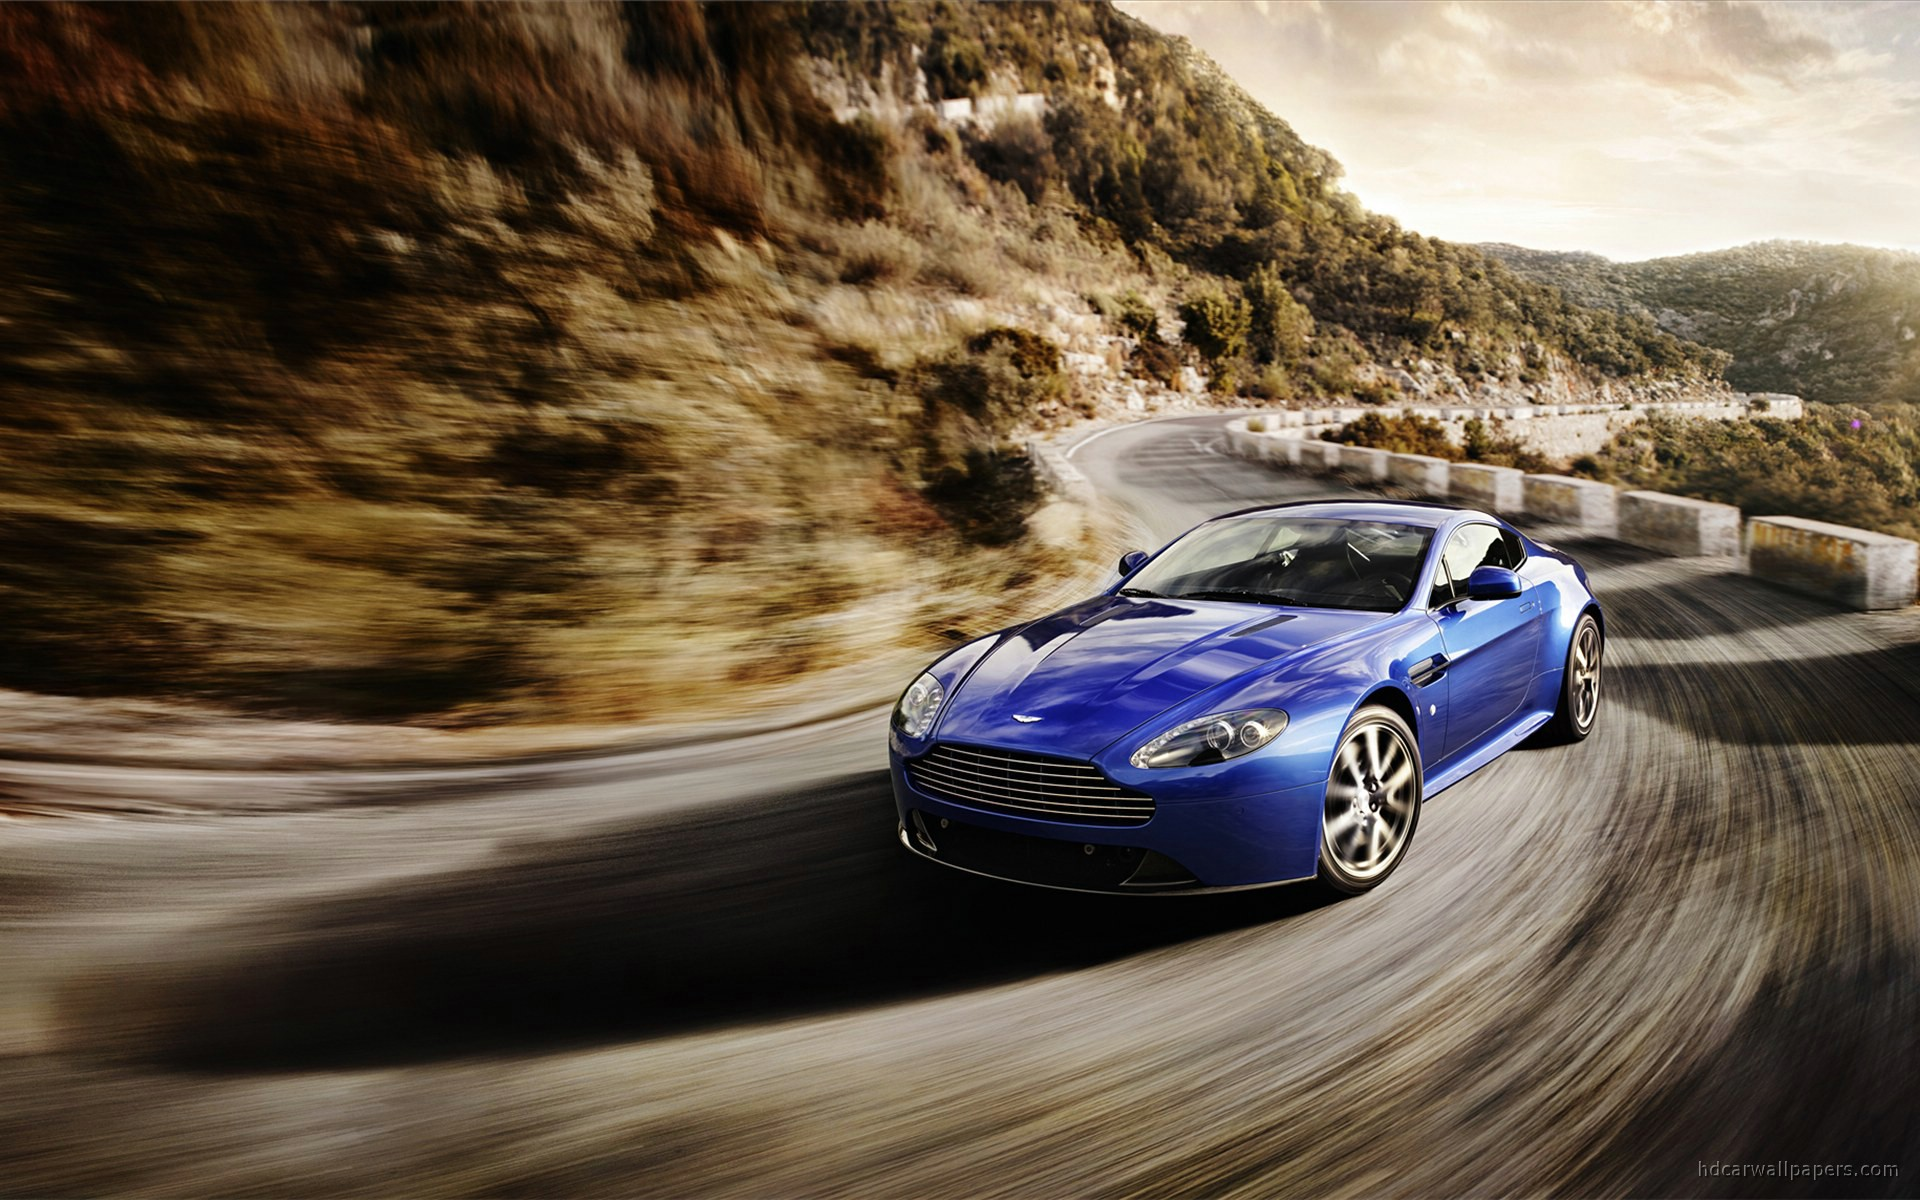 2011 aston martin v8 vantage s wallpaper hd car wallpapers id 1913. Black Bedroom Furniture Sets. Home Design Ideas